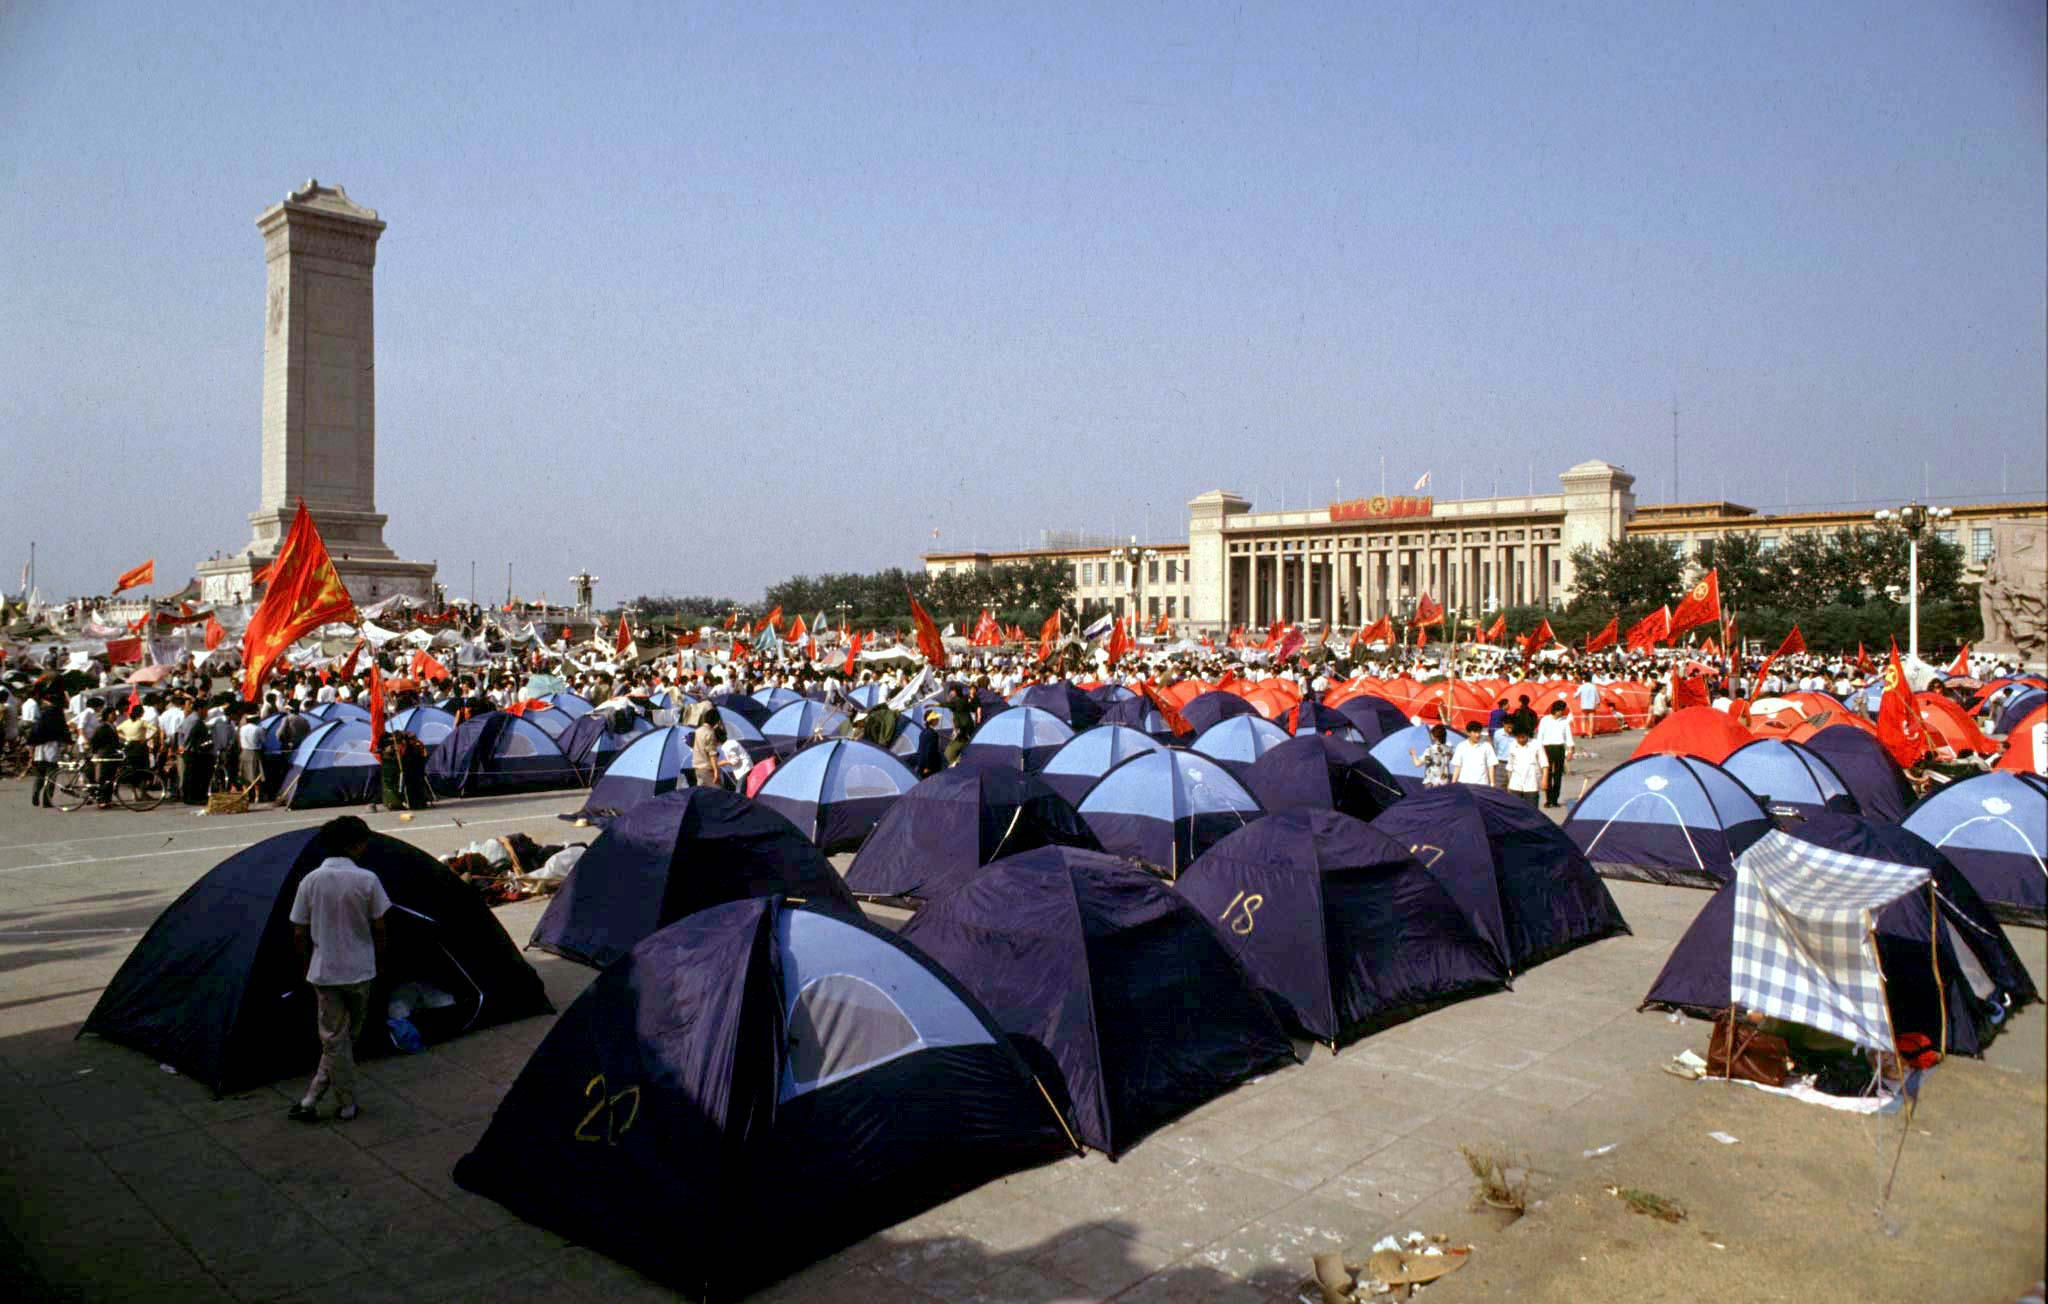 Pro-democracy demonstrators pitch tents in Beijing's Tiananmen Square before their protests were crushed by the People's Liberation Army on June 3, 1989. REUTERS/Bobby Yip